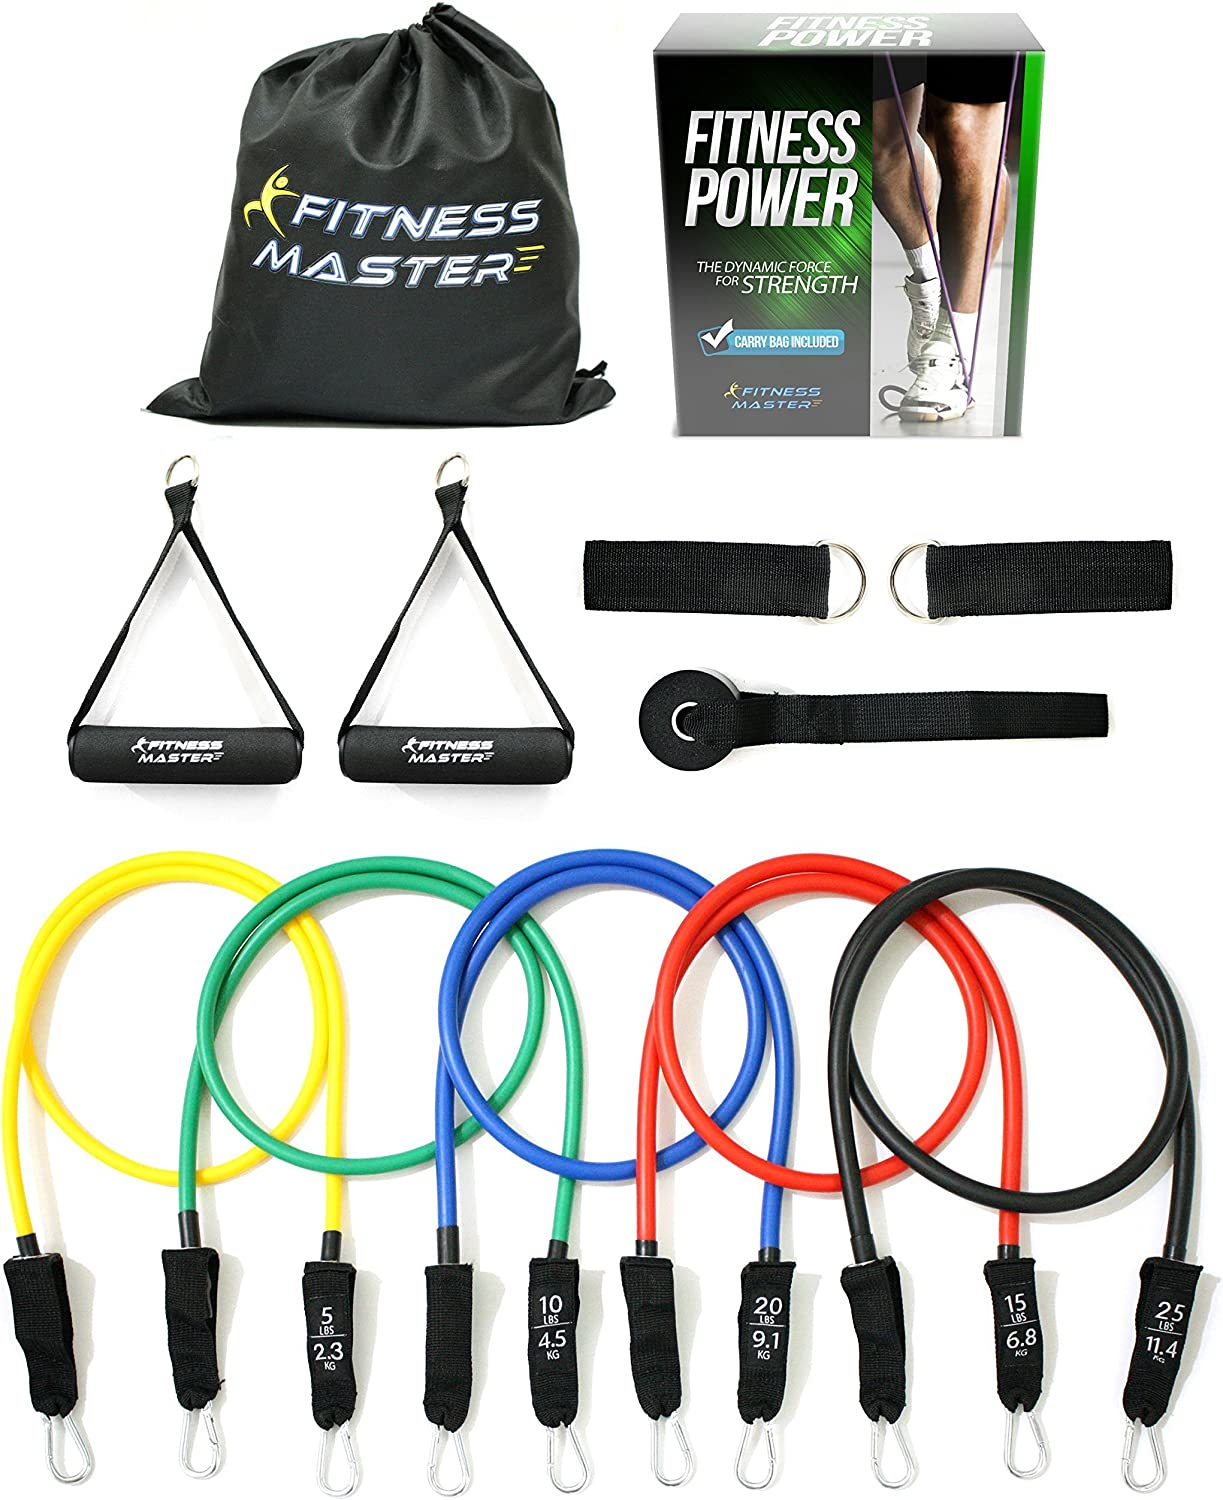 Resistance Bands - Tension Band Weights Exercise Indianapolis Mall Set Fitnes depot for